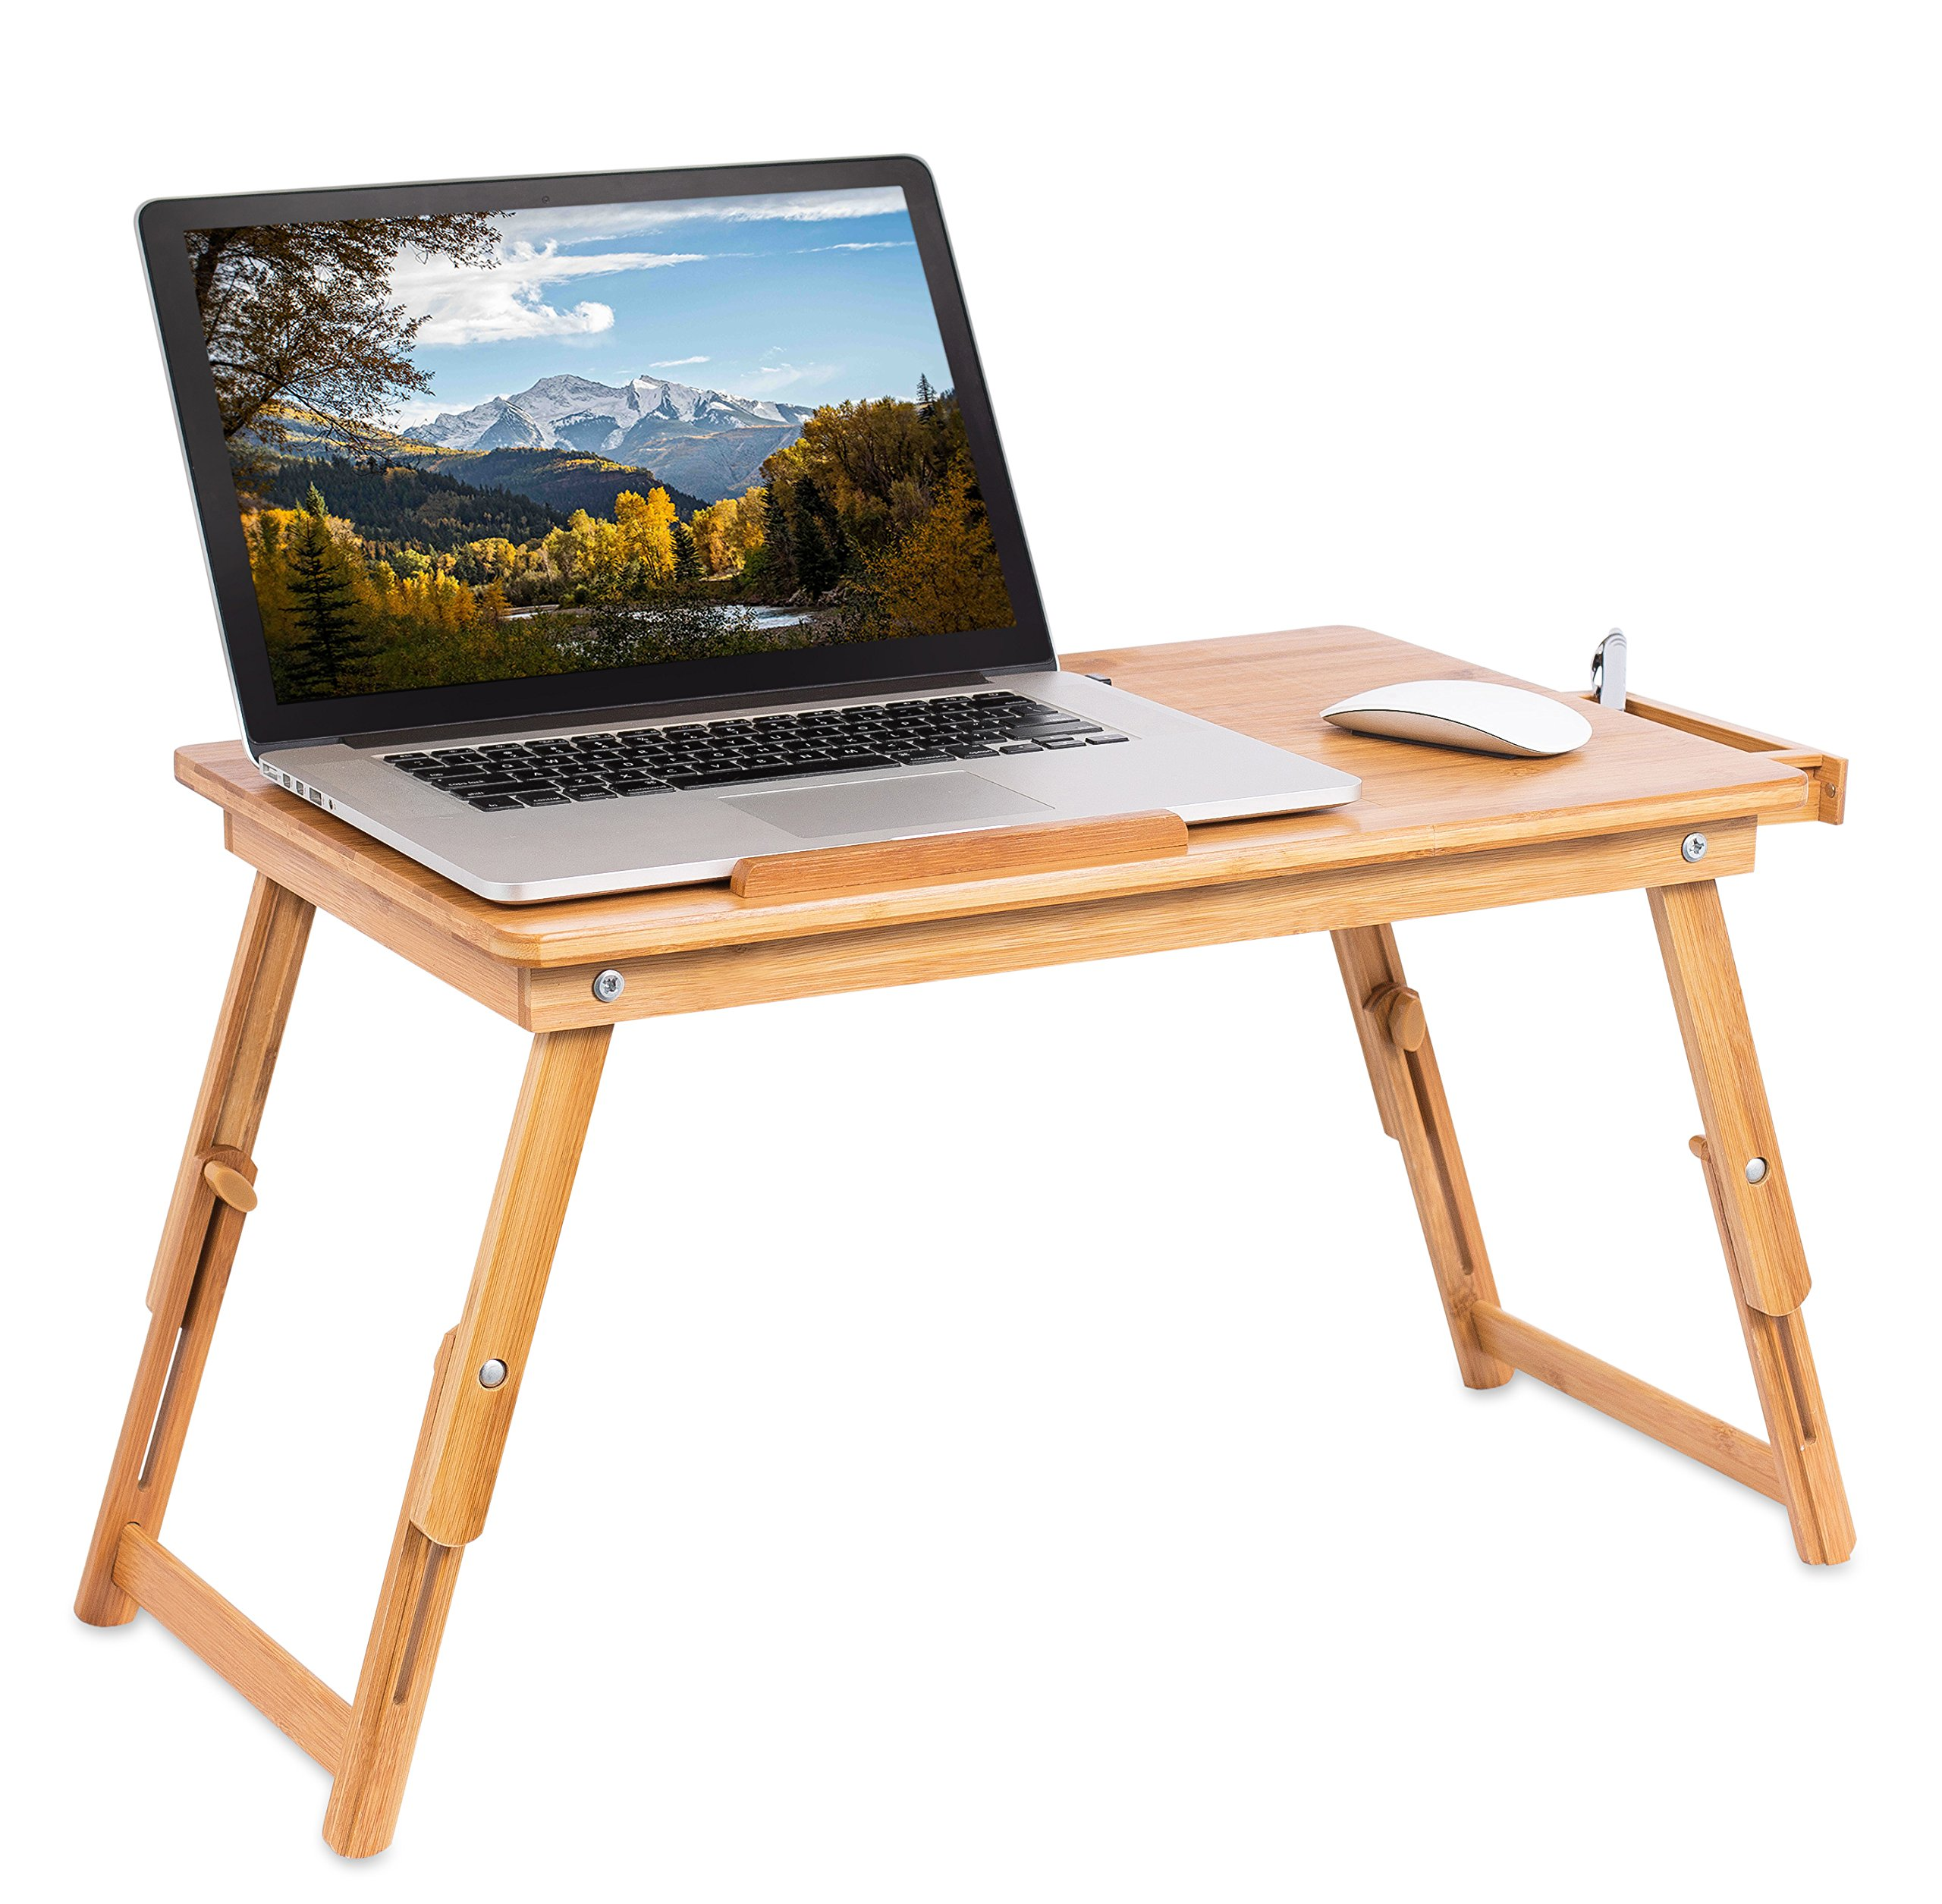 Sofia + Sam Laptop Lap Tray with Adjustable Legs | Bamboo | Foldable Breakfast Serving Bed Tray | Lap Desk with Tilting Top and Side Drawer | Laptop Stand | Natural by Sofia + Sam (Image #3)